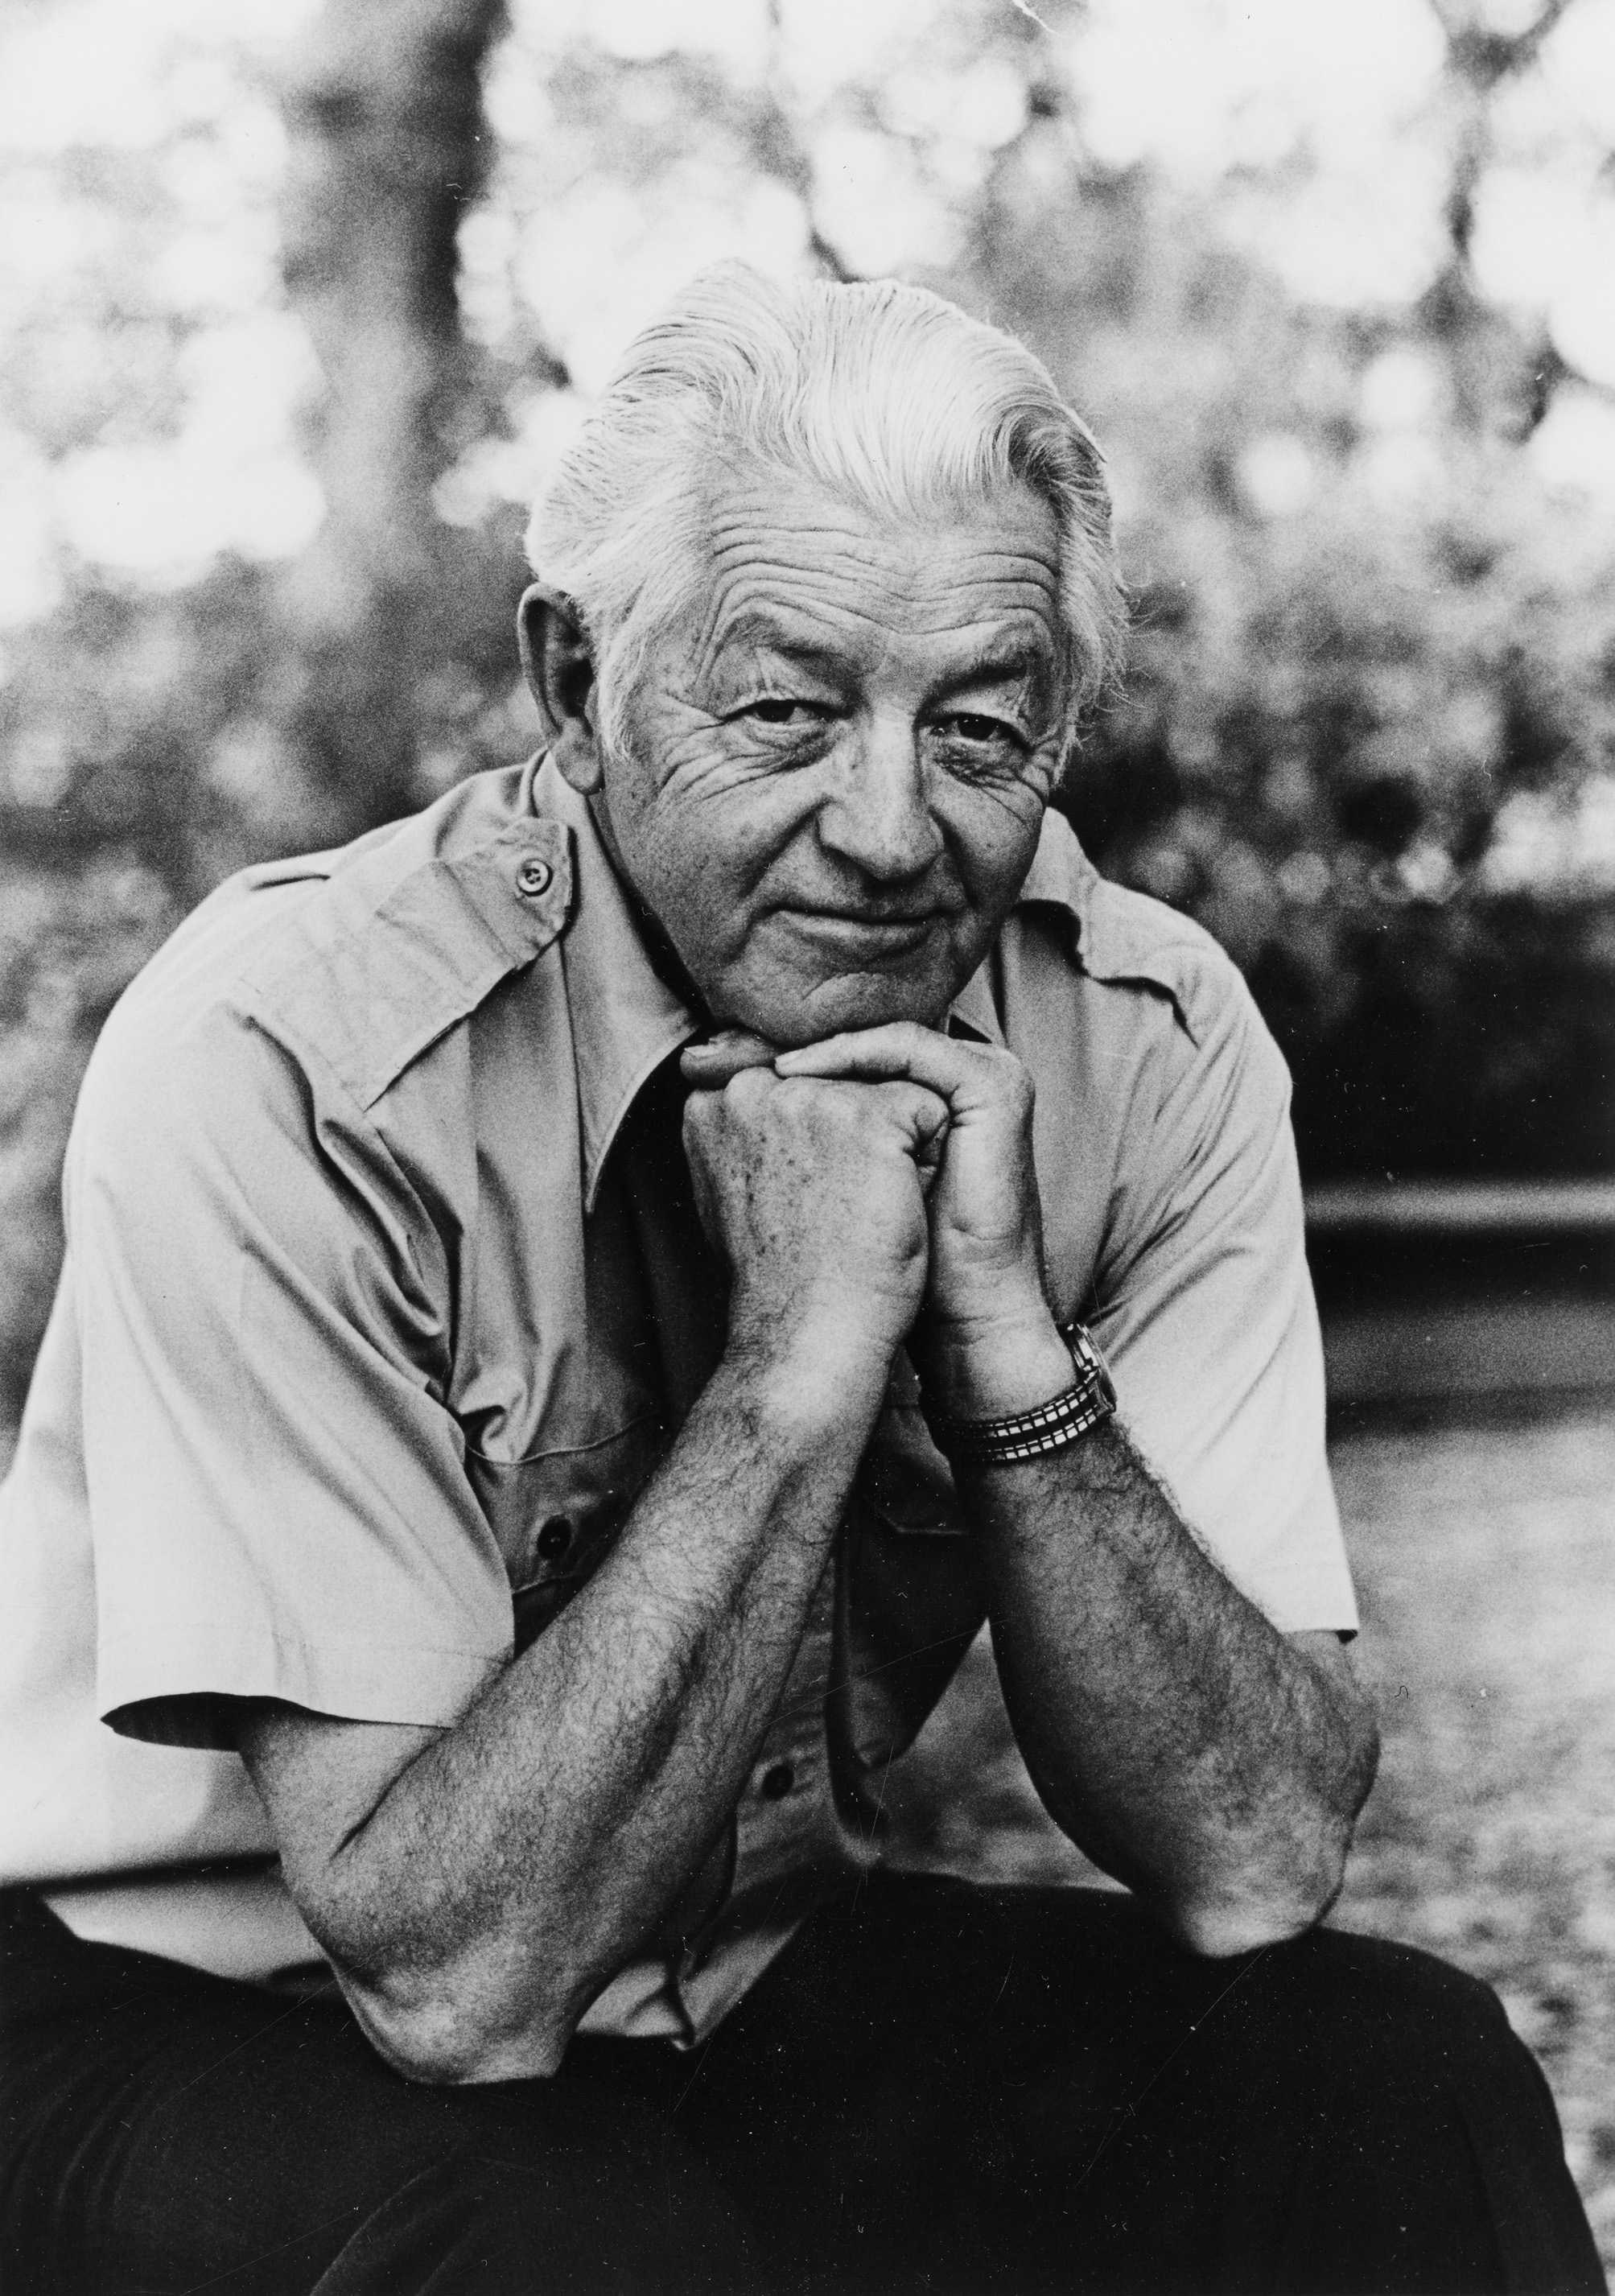 wallace stegner sense of place essay Wallace stegner was a regional writer in the best sense his settings, characters, and plots derive from the western experience, but his primary concern is with the meaning of that experience.